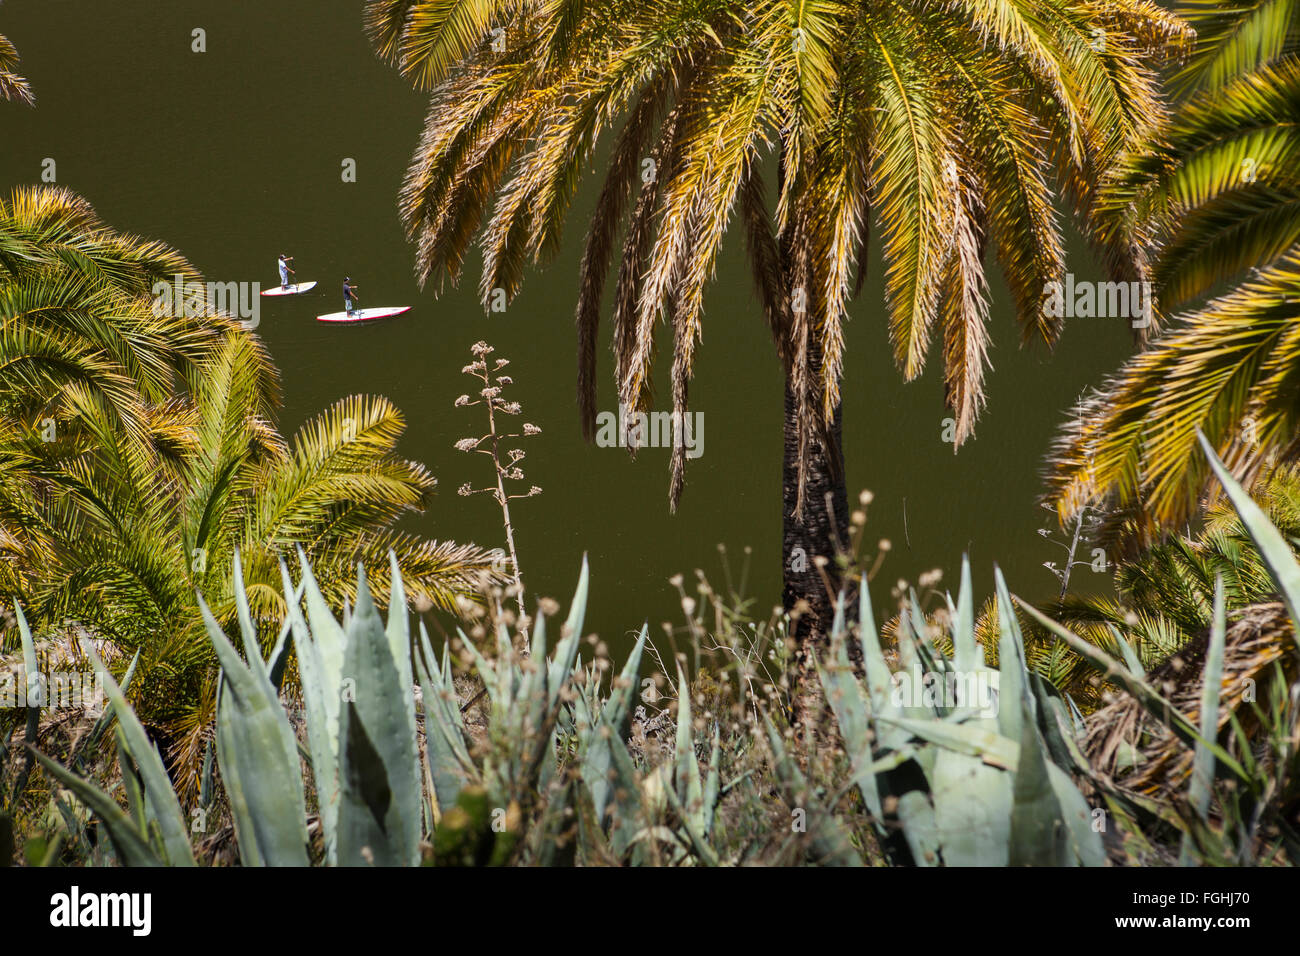 In between palms view of two persons stand up paddling in a dam - Stock Image